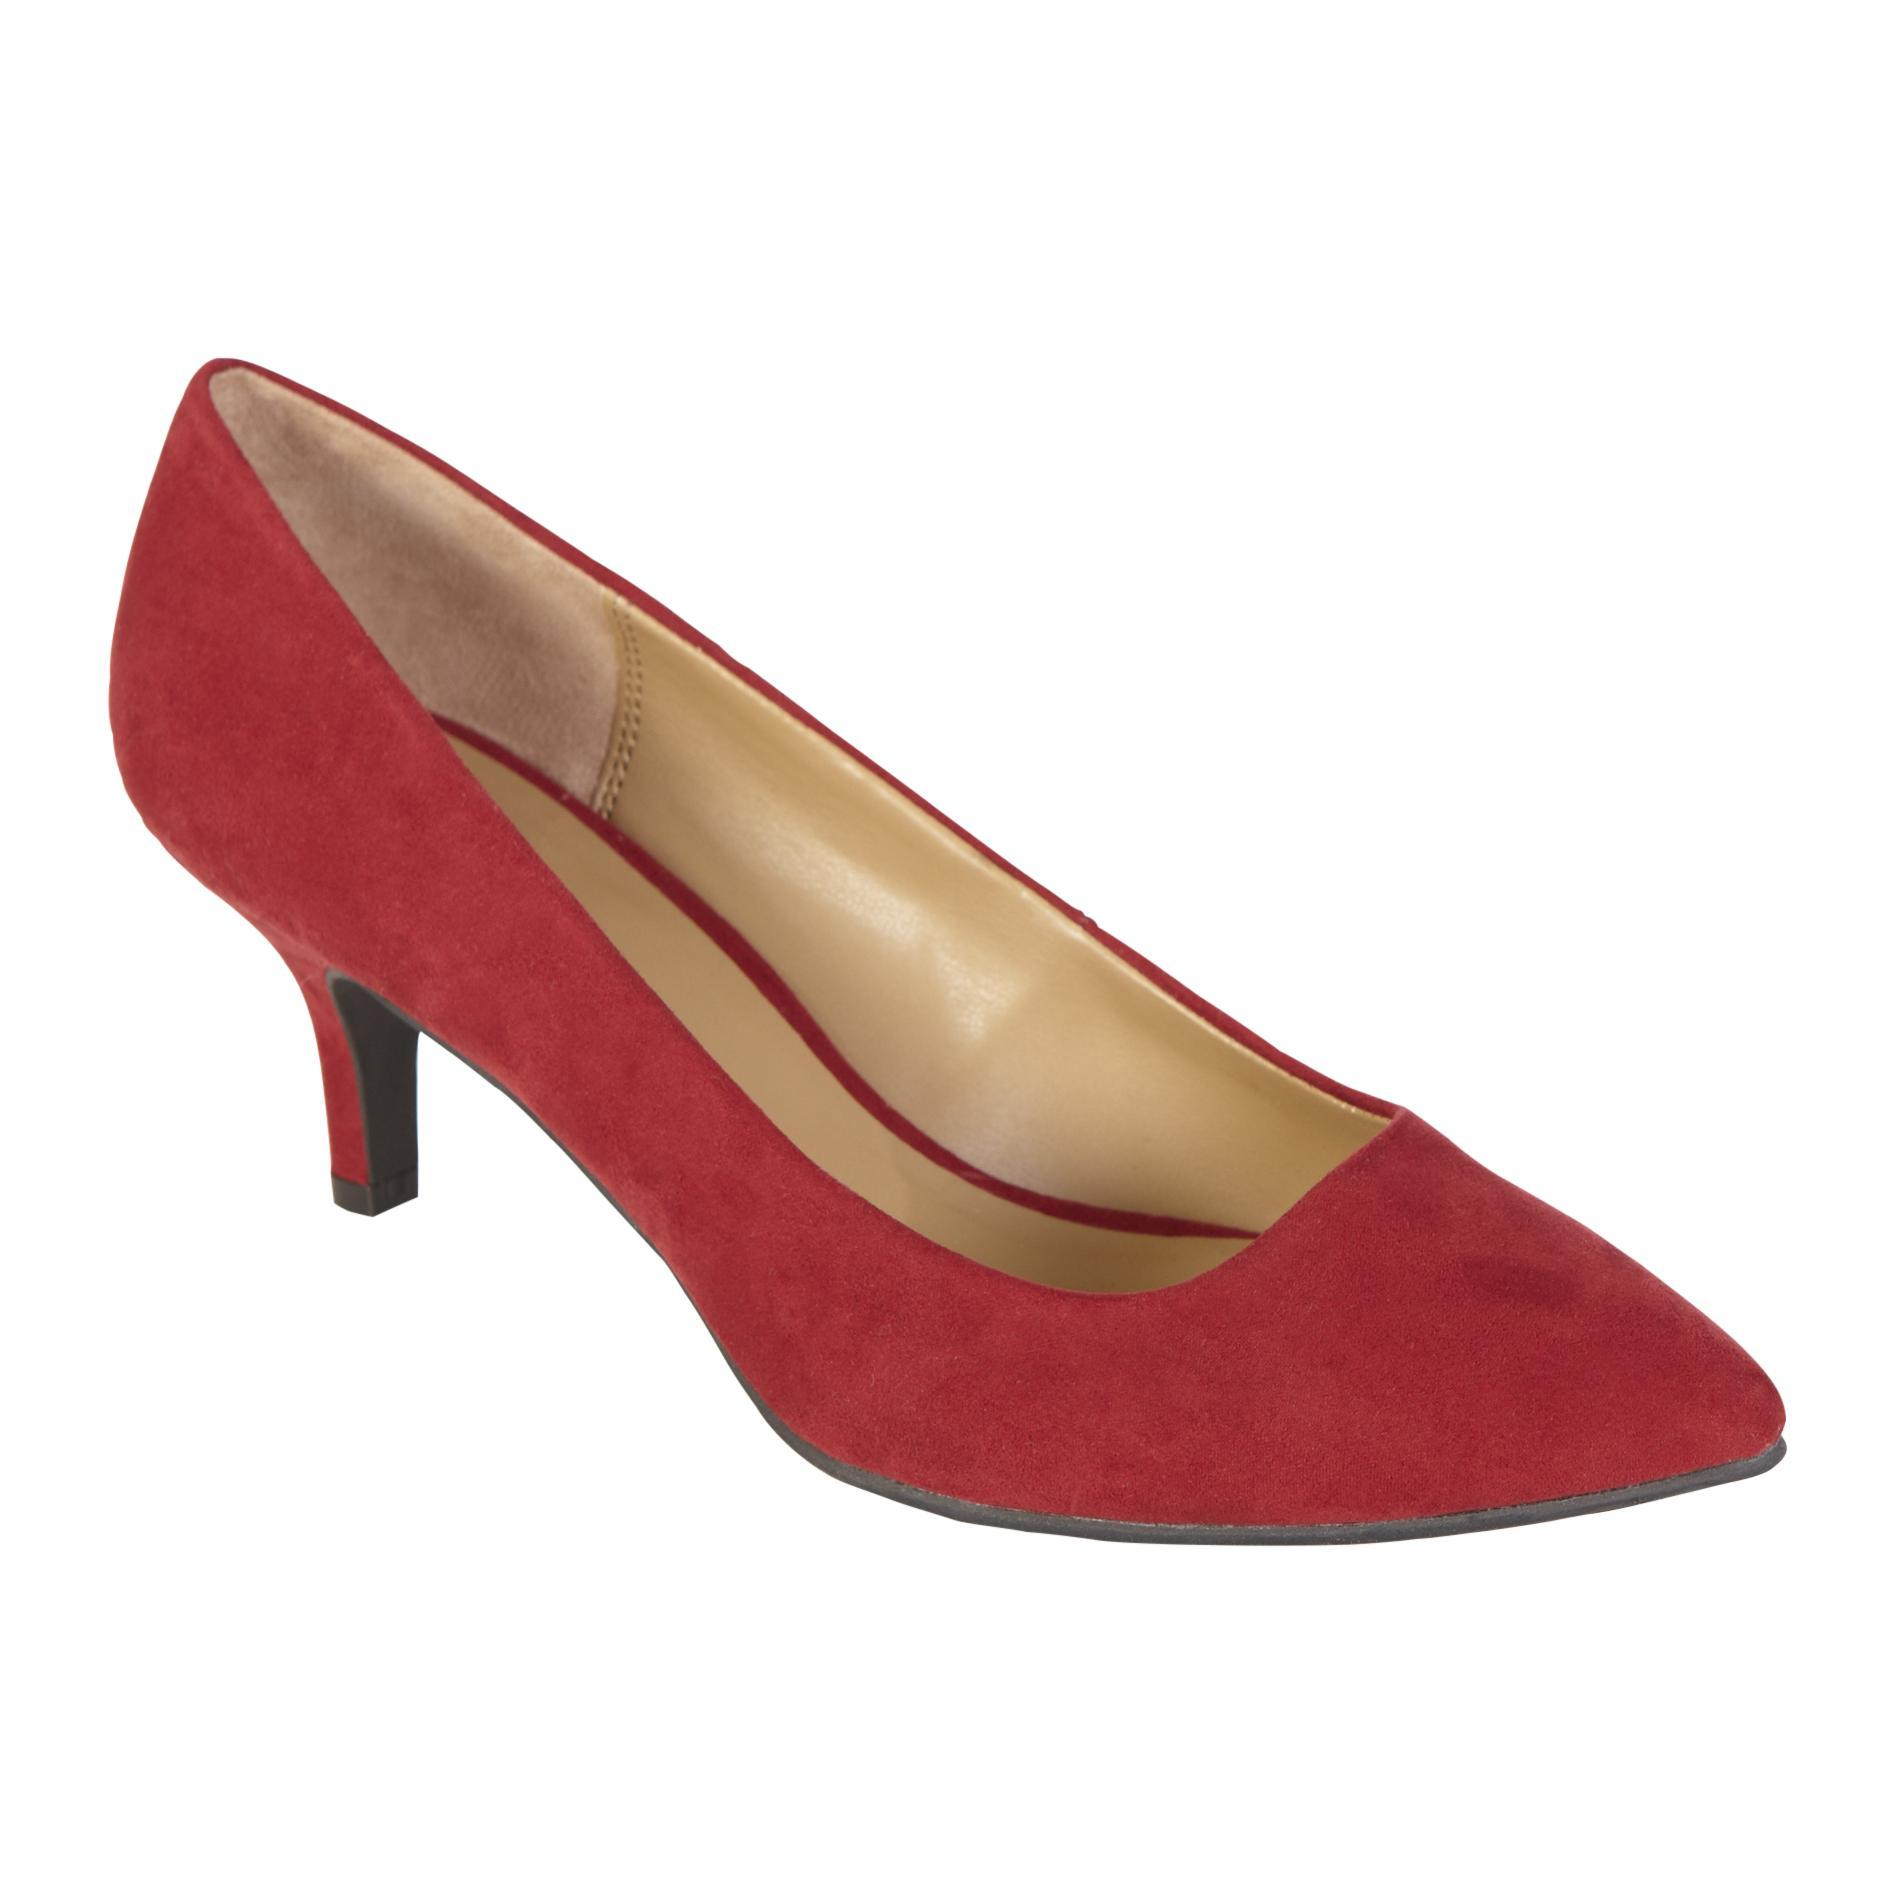 Women's Dress Shoe Zoey - Faux Suede Red